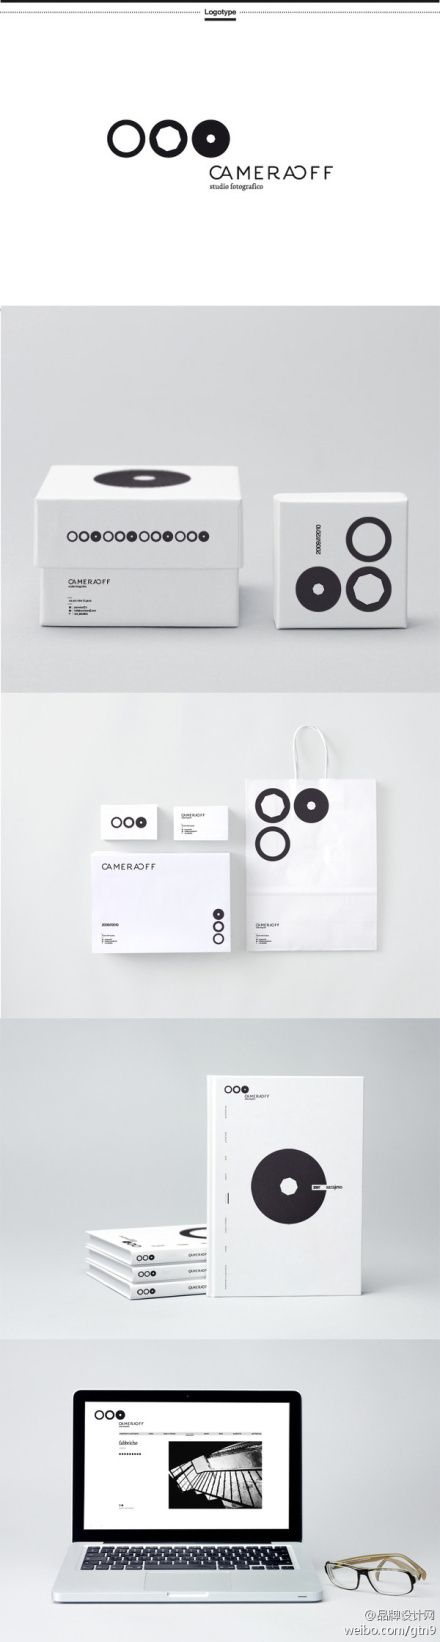 CameraOff branded flyer, packaging and website | Brand design: CameraOff @ nuaban |